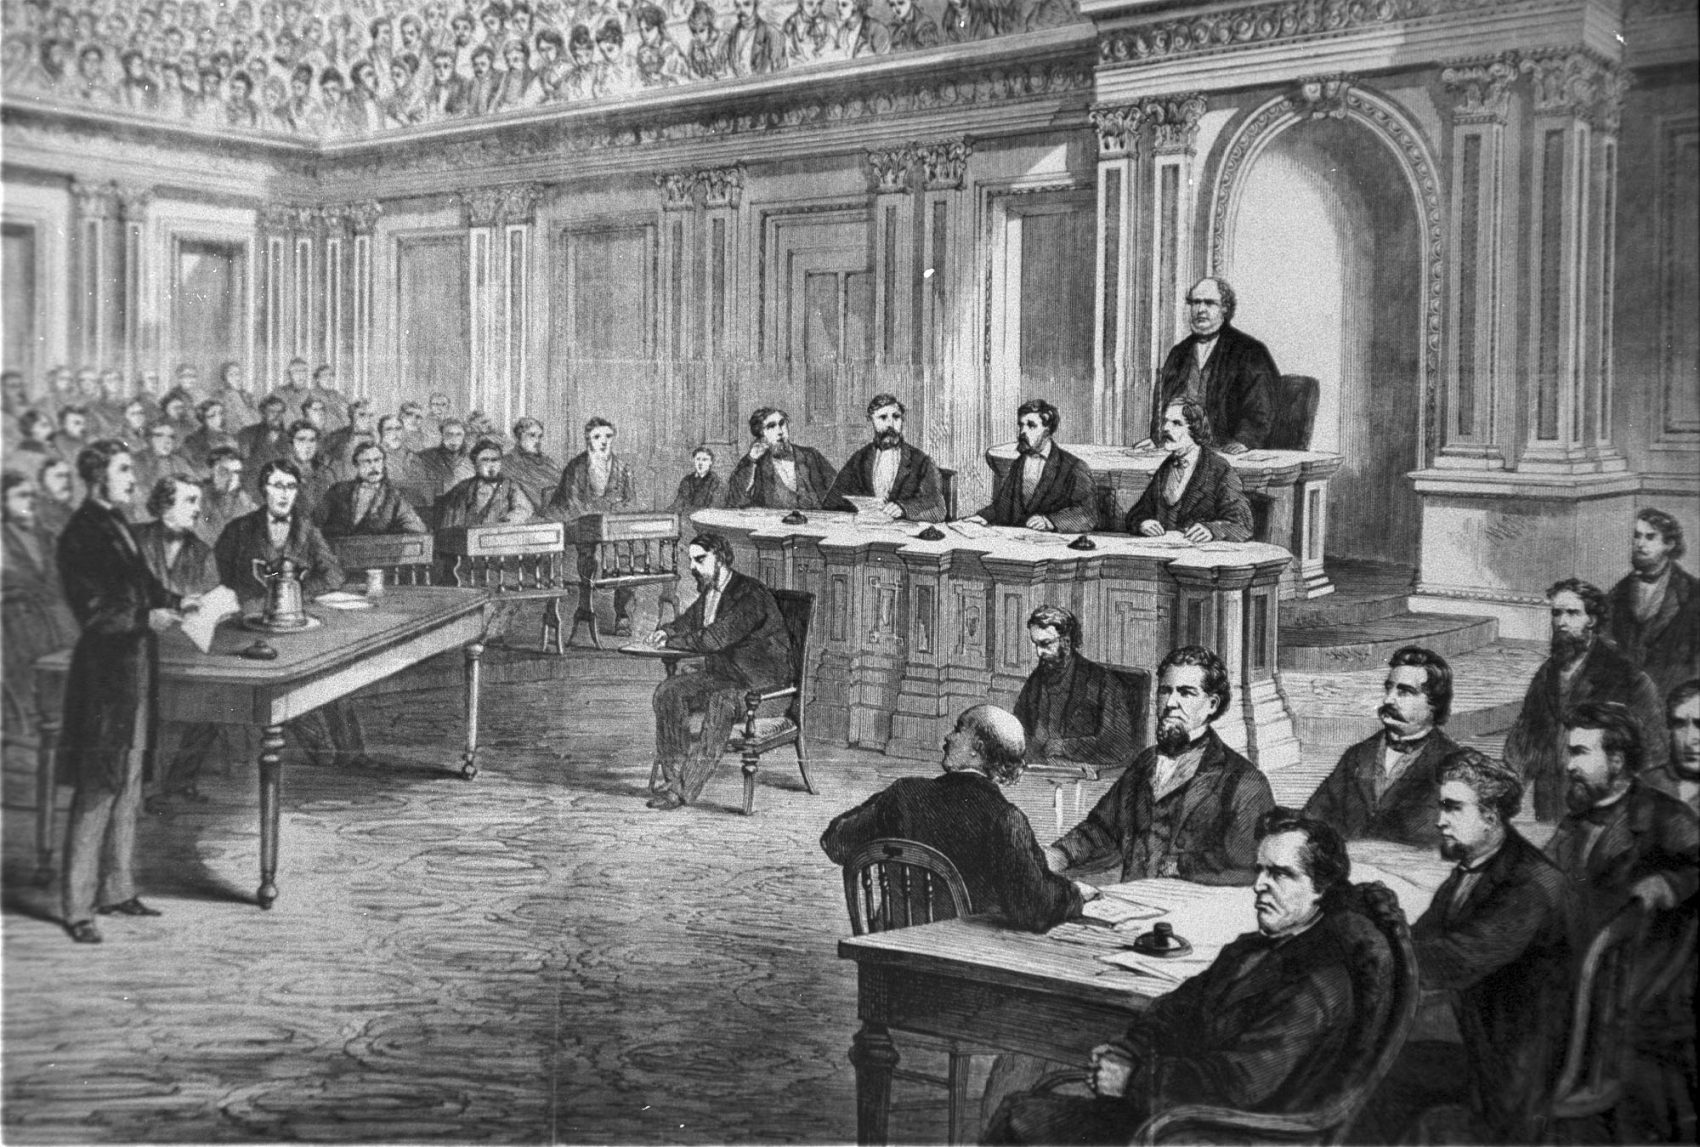 An engraving showing the impeachment trial of President Andrew Johnson in the Senate on March 13, 1868. (Library of Congress)